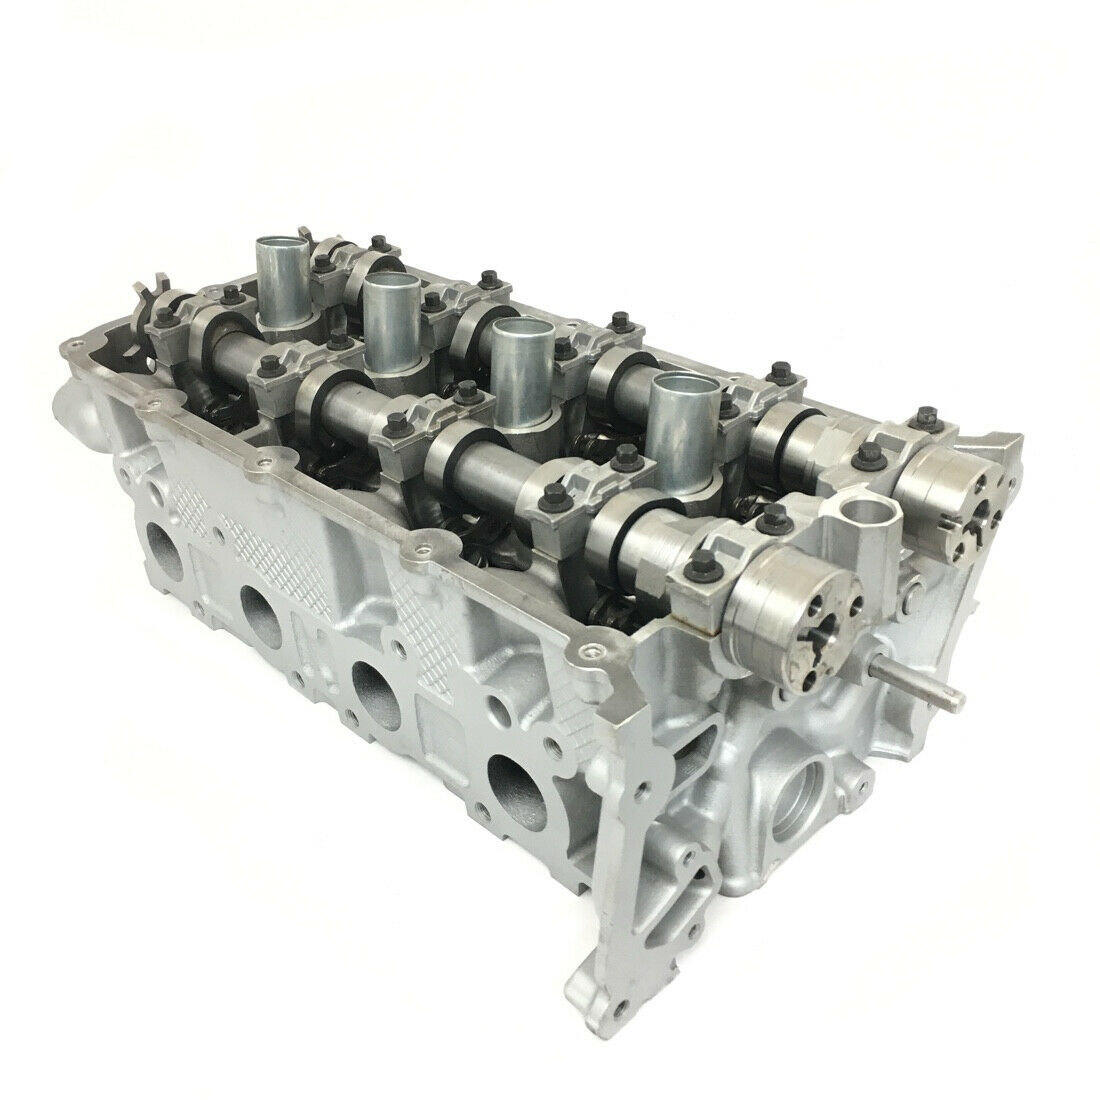 Genuine Ford Mustang 5.0L 4V Cylinder Head Assembly Passenger Side FR3E